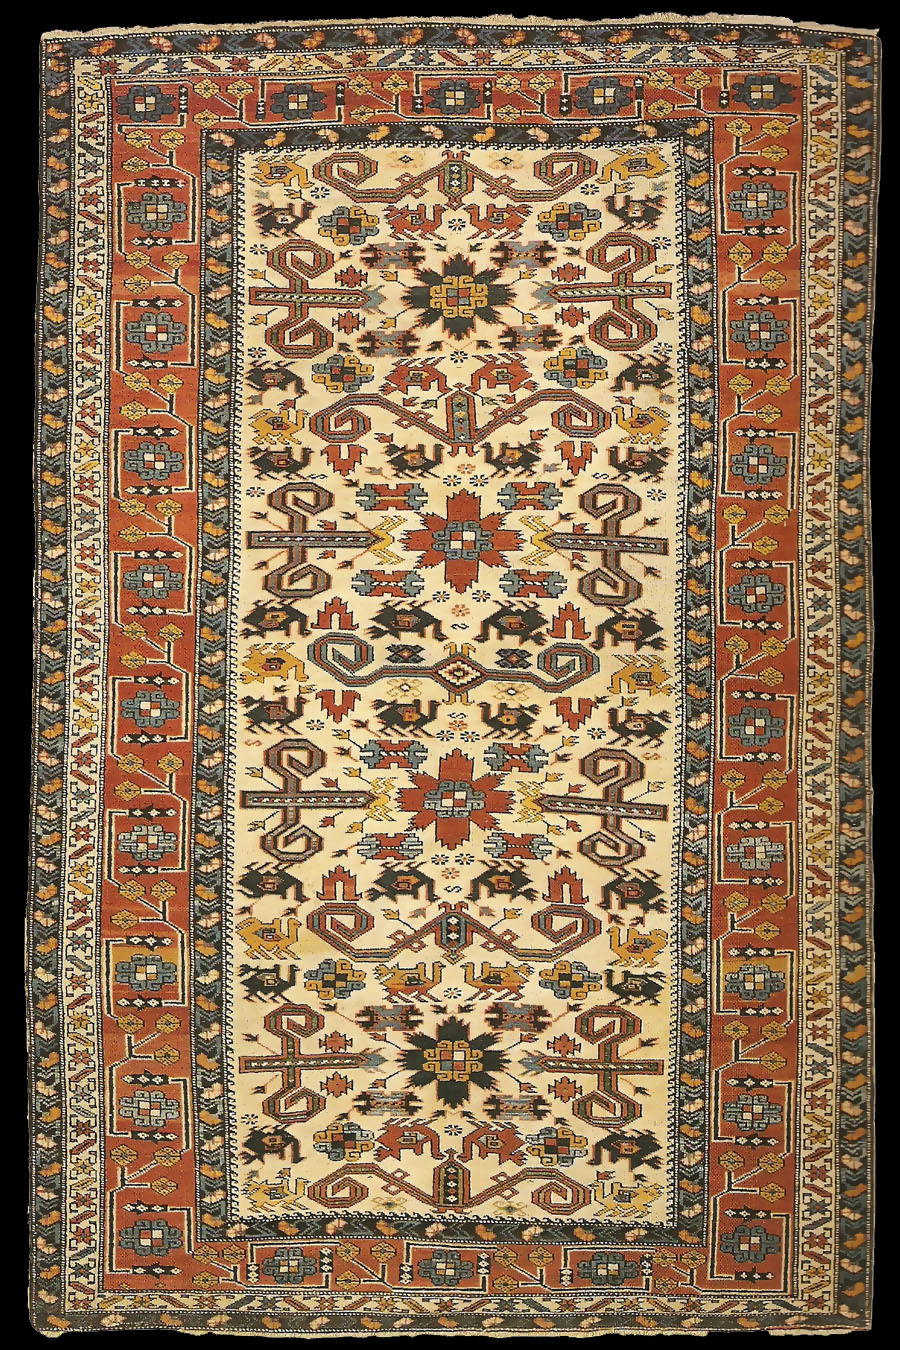 Alberto Boralevis Antique Kuba Perepedil (Pirabadil) Carpet